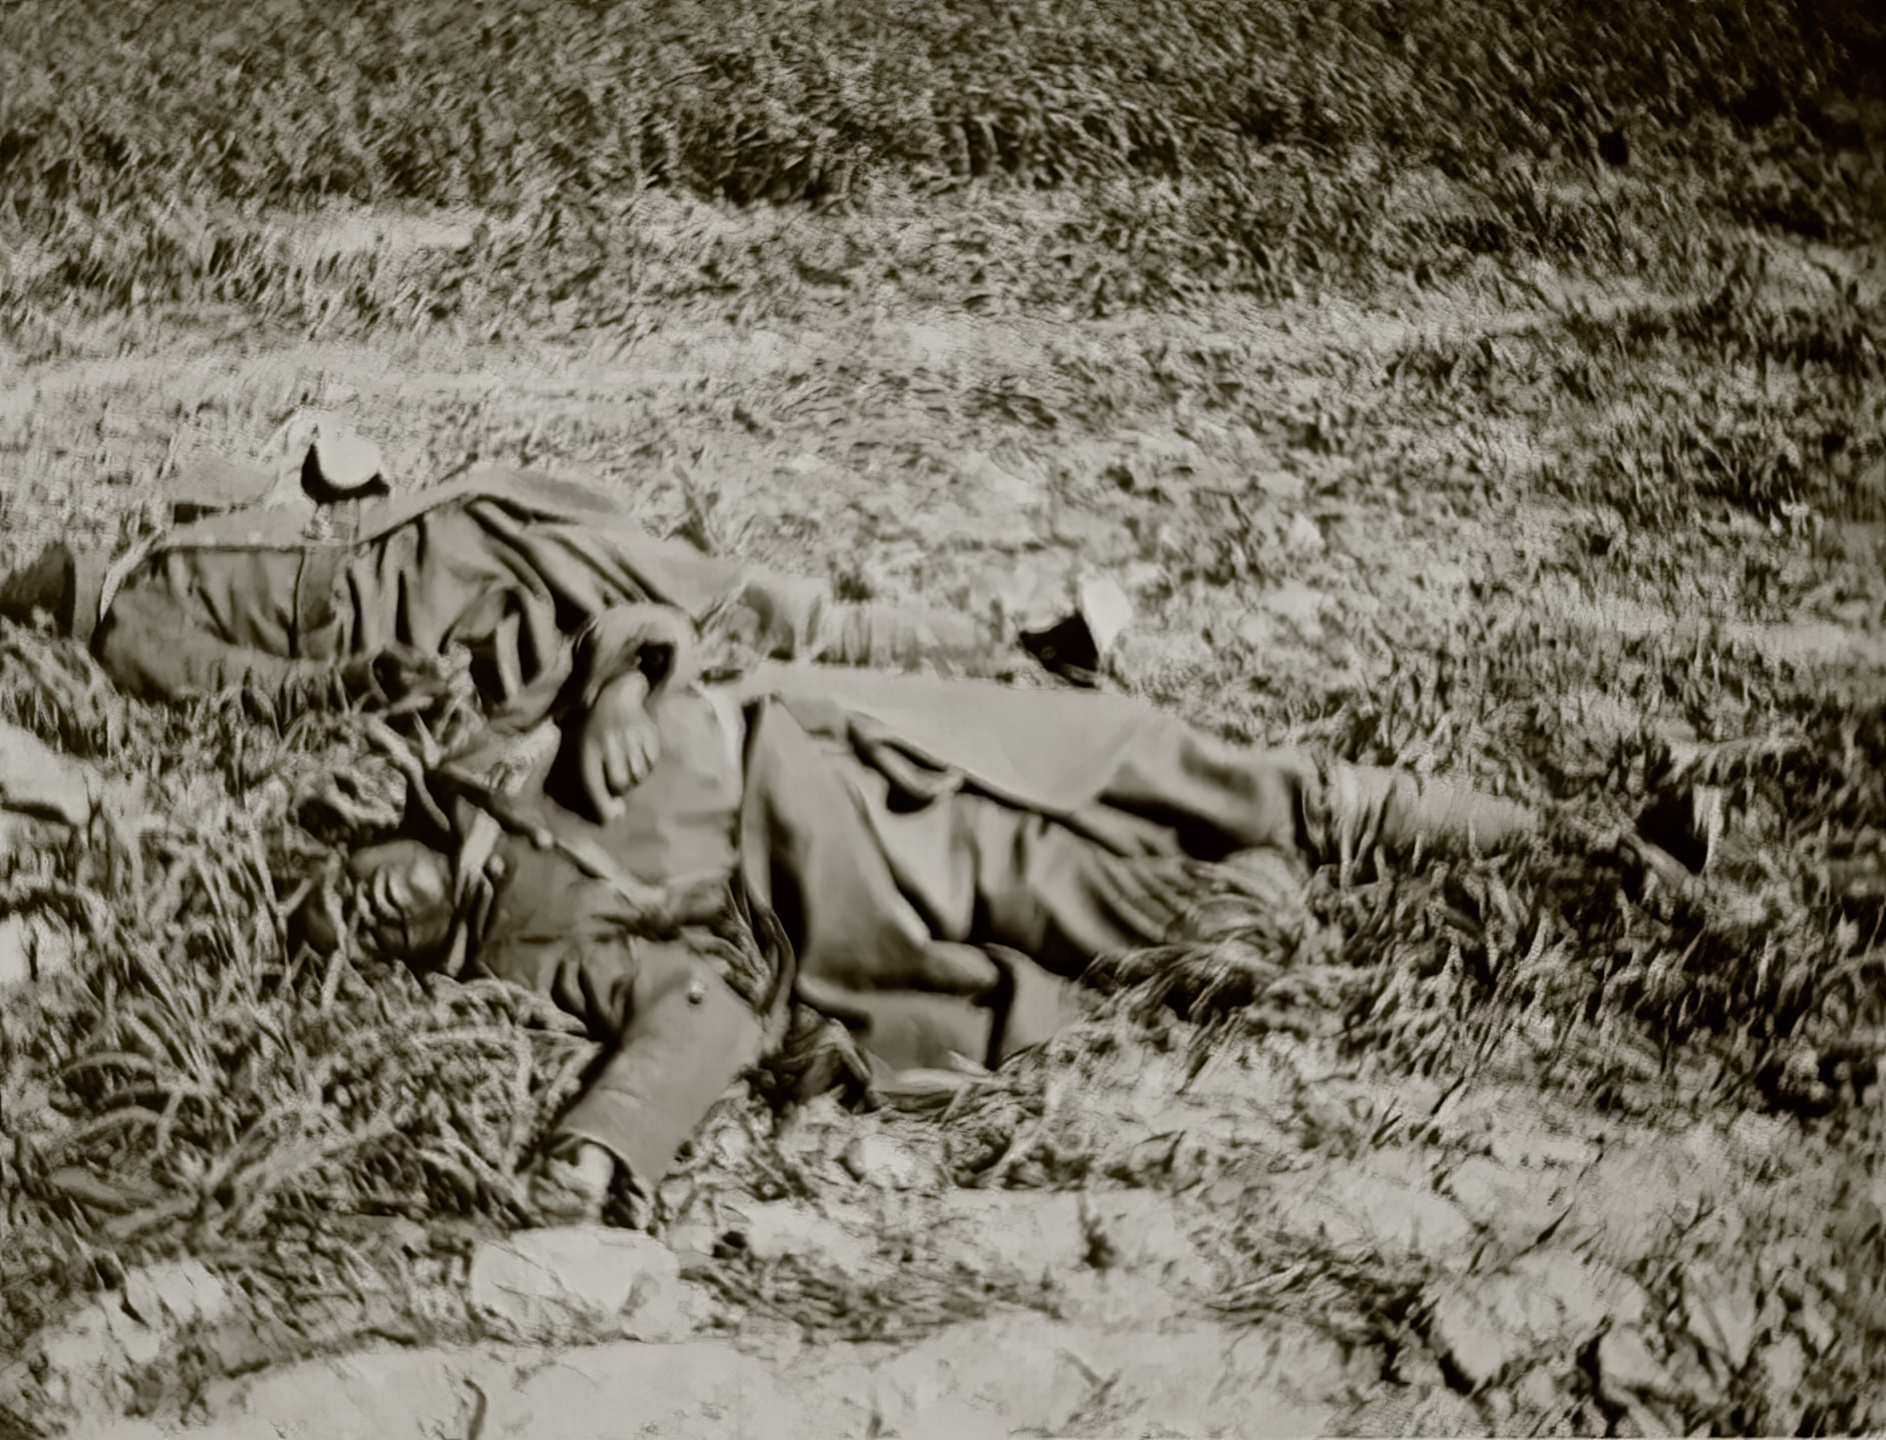 French soldiers most likely executed after surrendering battle of France May Jun 1940 ebay 01